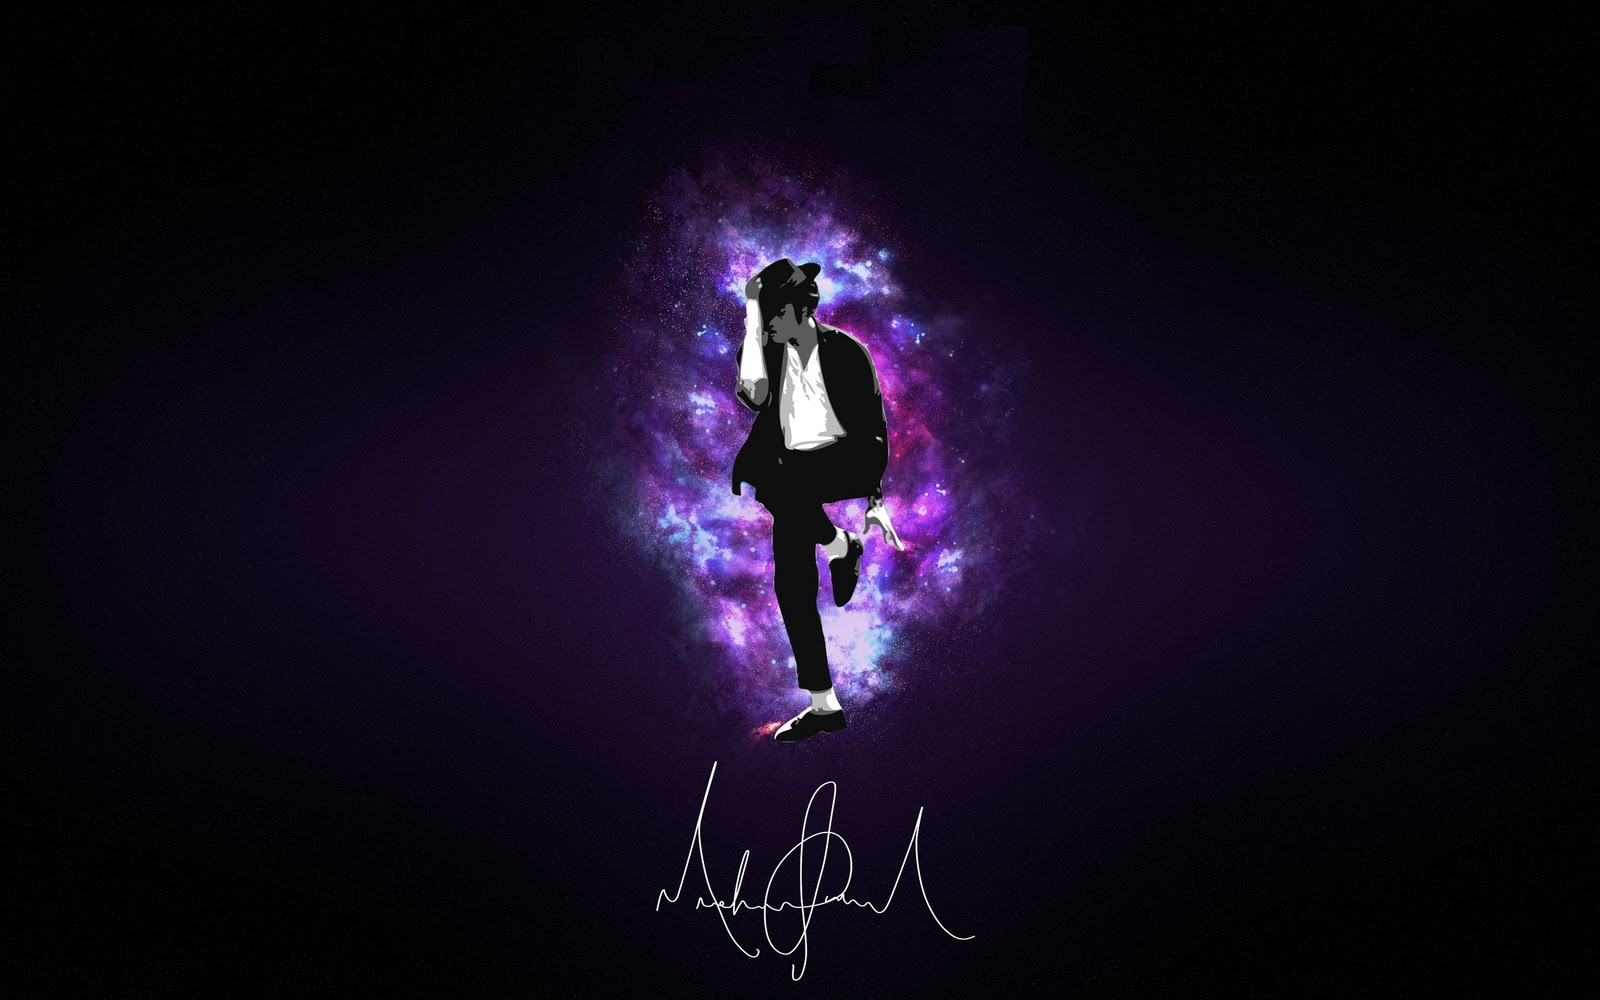 Michael Jackson Moonwalk Wallpaper Background Festival Wallpaper 1600x1000